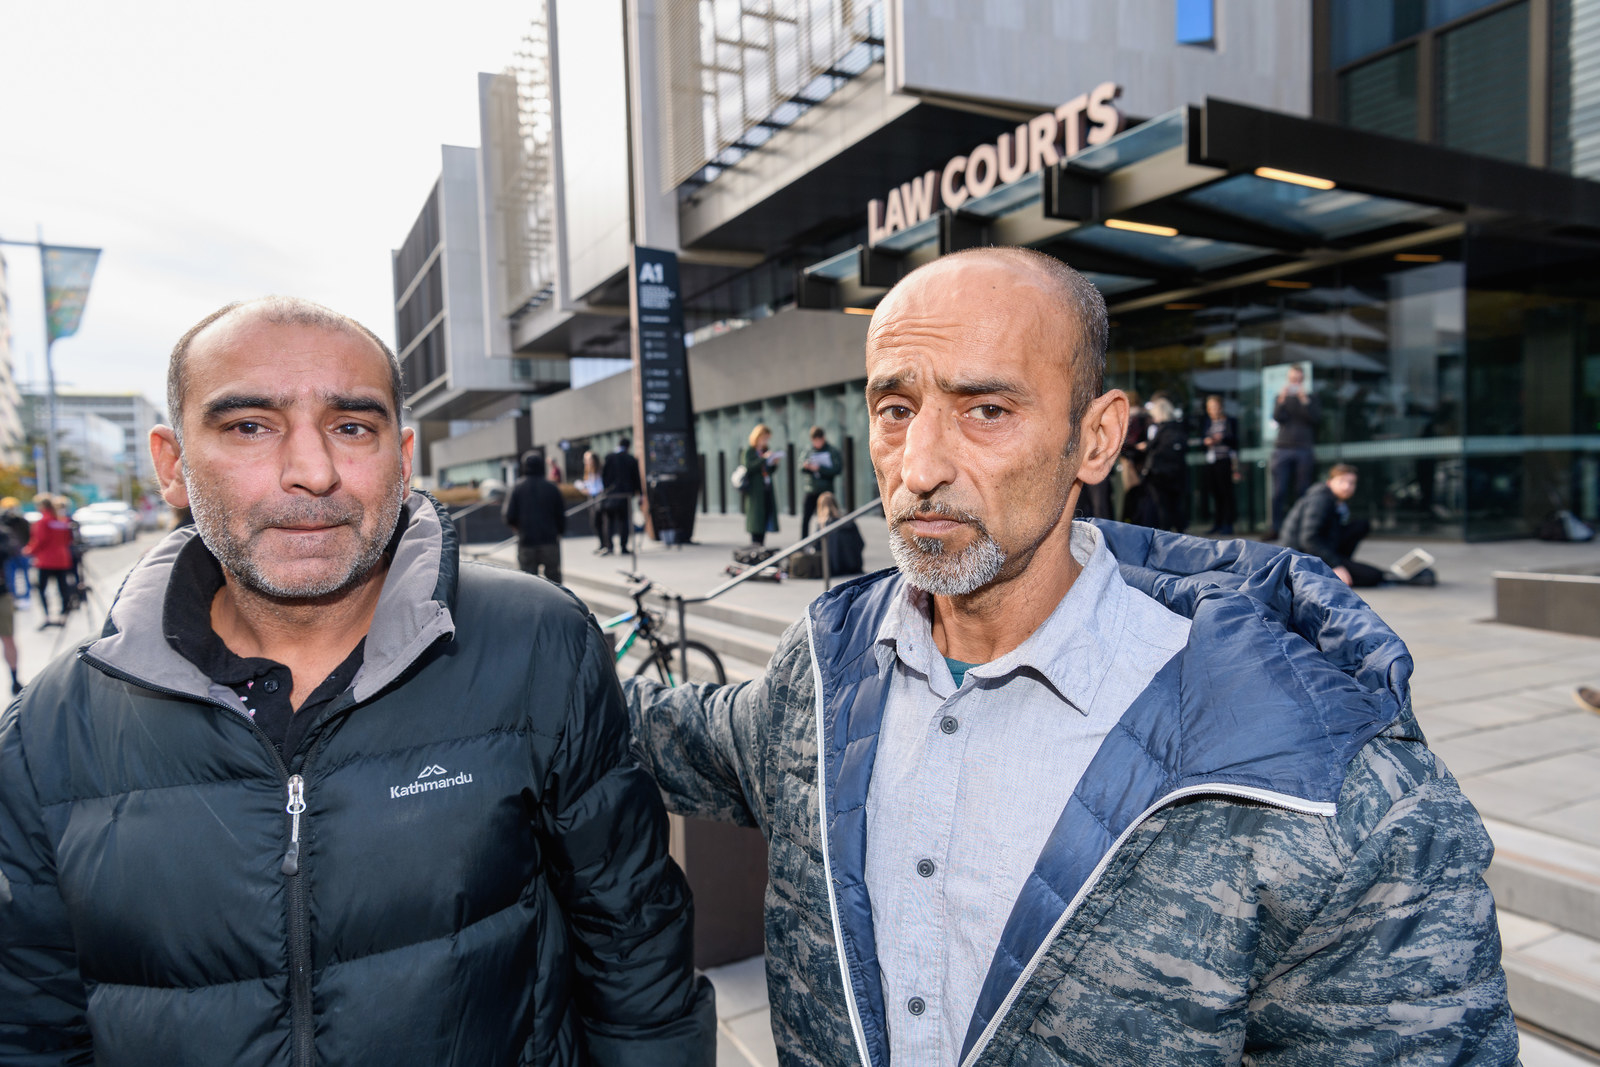 Brothers Yama Nabi and Omar Nabi (L-R) speak to the media about their father Daoud Nabi who was killed at Al Noor mosque as they wait in front of Christchurch District Court